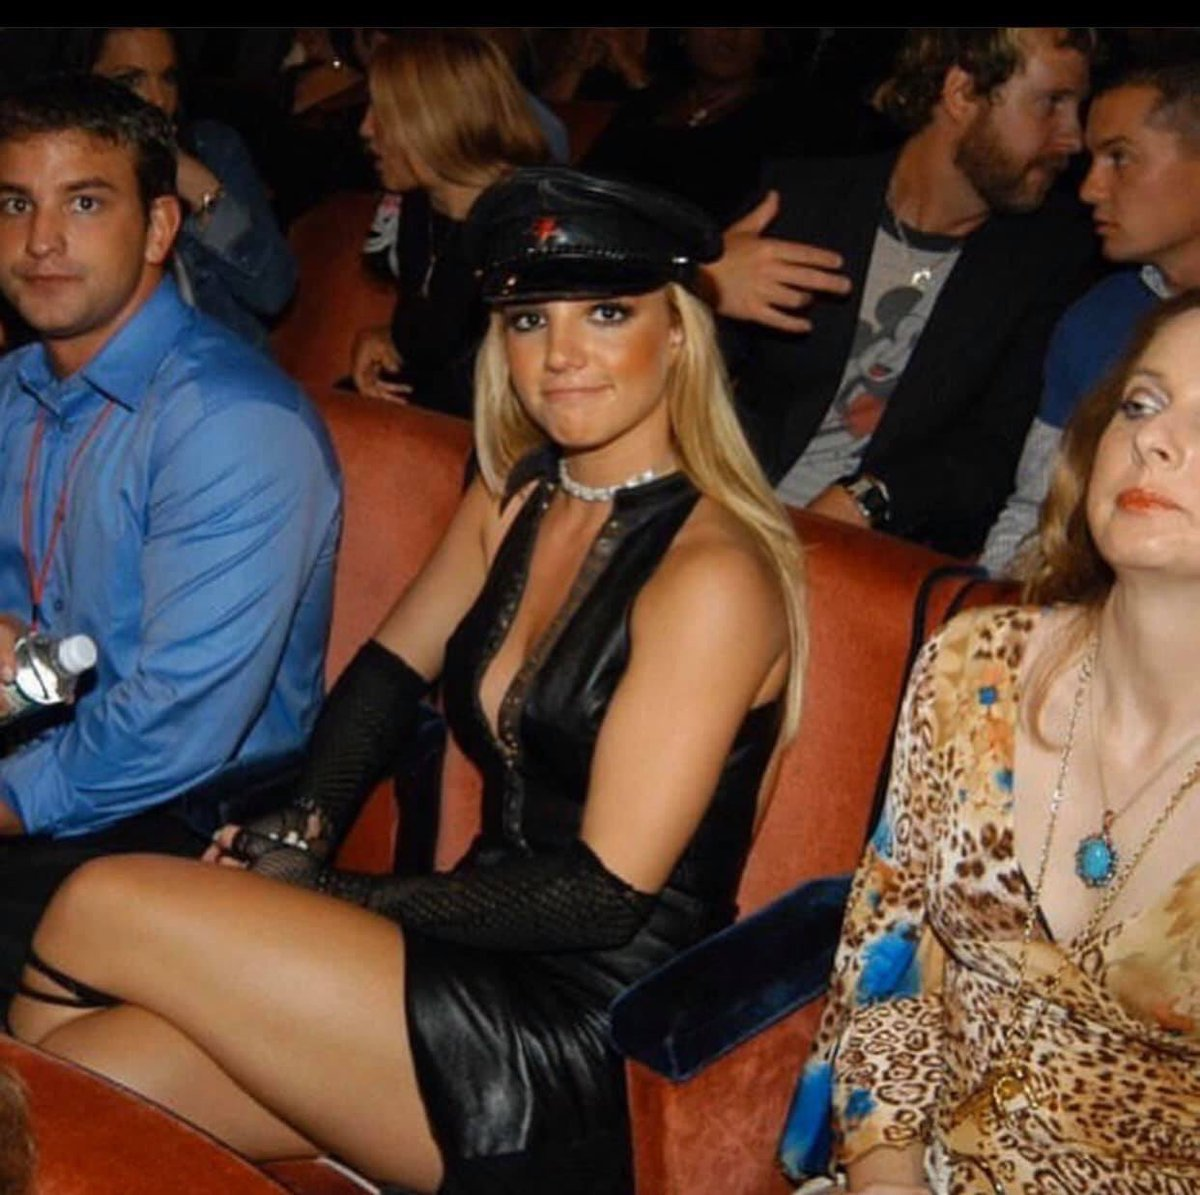 @britneyspears What year was this photo taken and who is that lady sitting next to you in the cat print shirt?  Was she a animal handler, advocate, fan, etc. (if you remember of course)?  Inquiring minds want to know. pic.twitter.com/VpgRxuOrwn